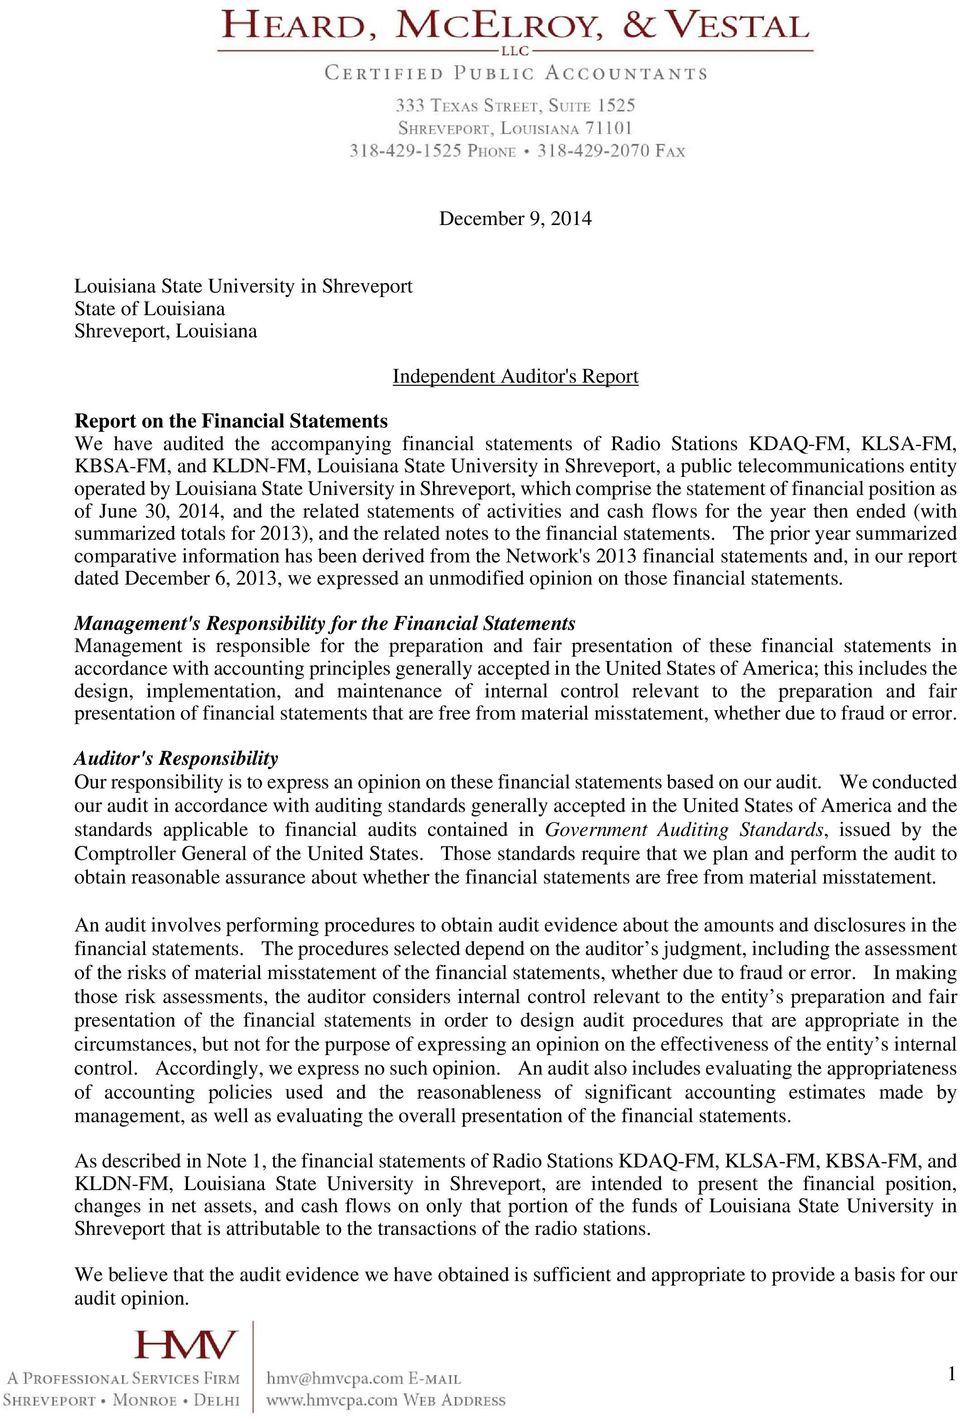 Shreveport, which comprise the statement of financial position as of June 30, 2014, and the related statements of activities and cash flows for the year then ended (with summarized totals for 2013),